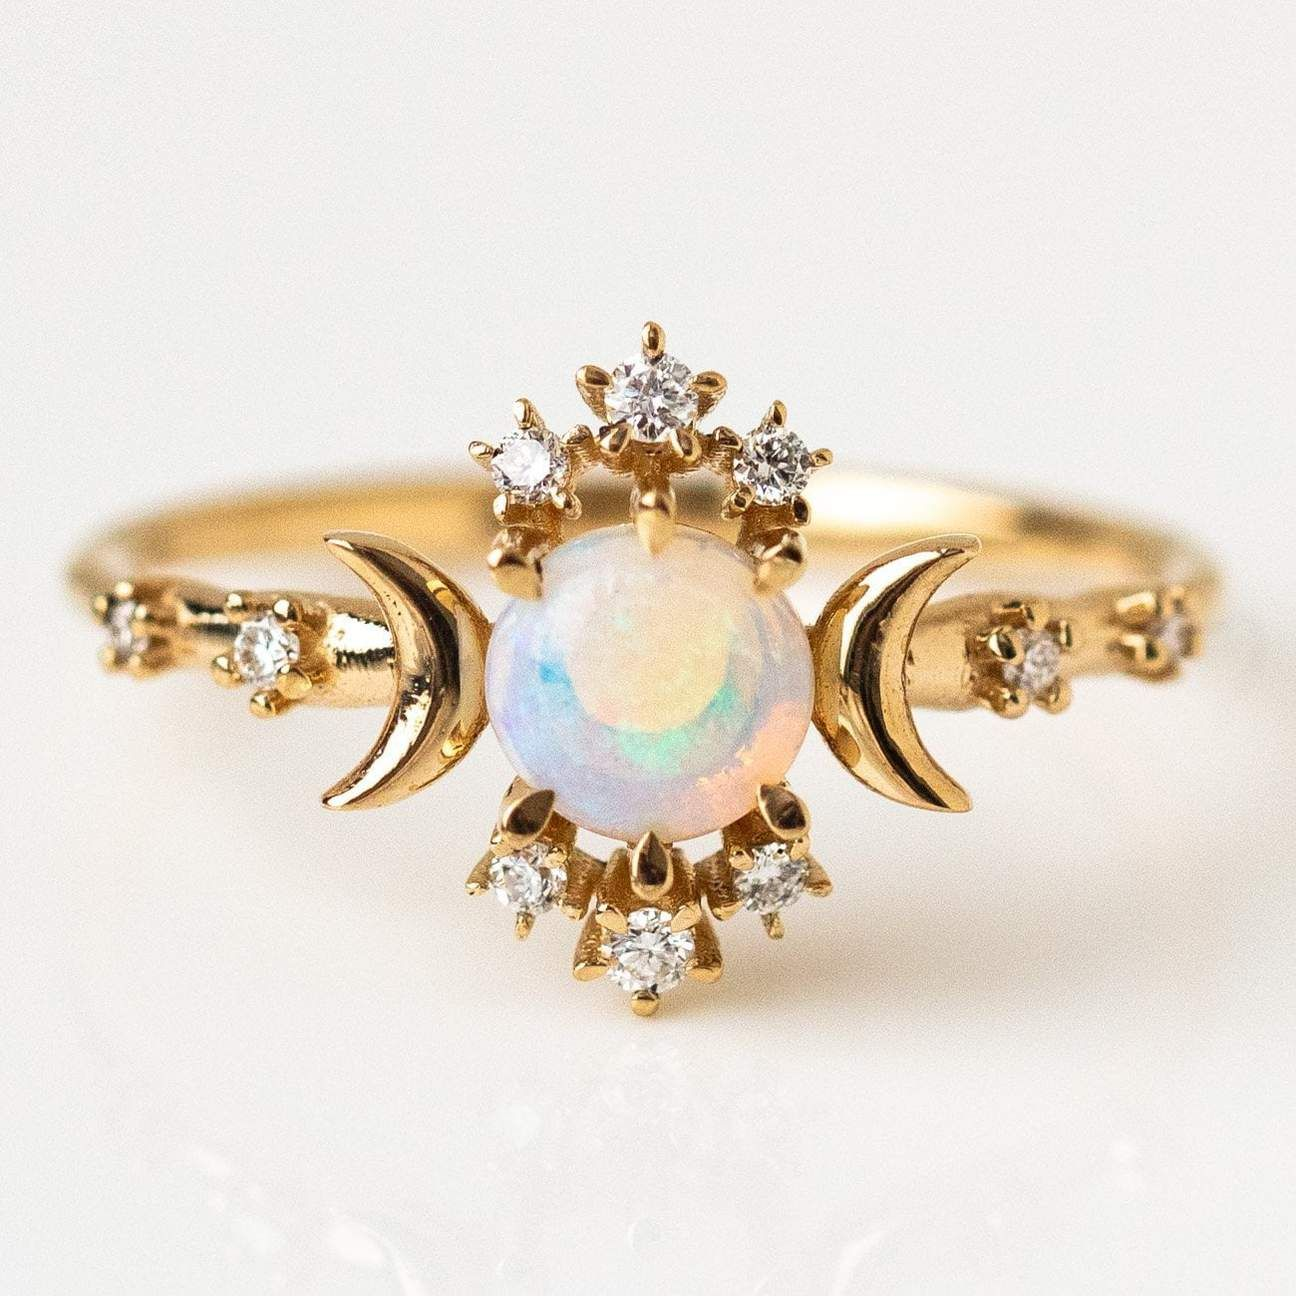 Wandering Star Ring with Opal (With images) Beautiful